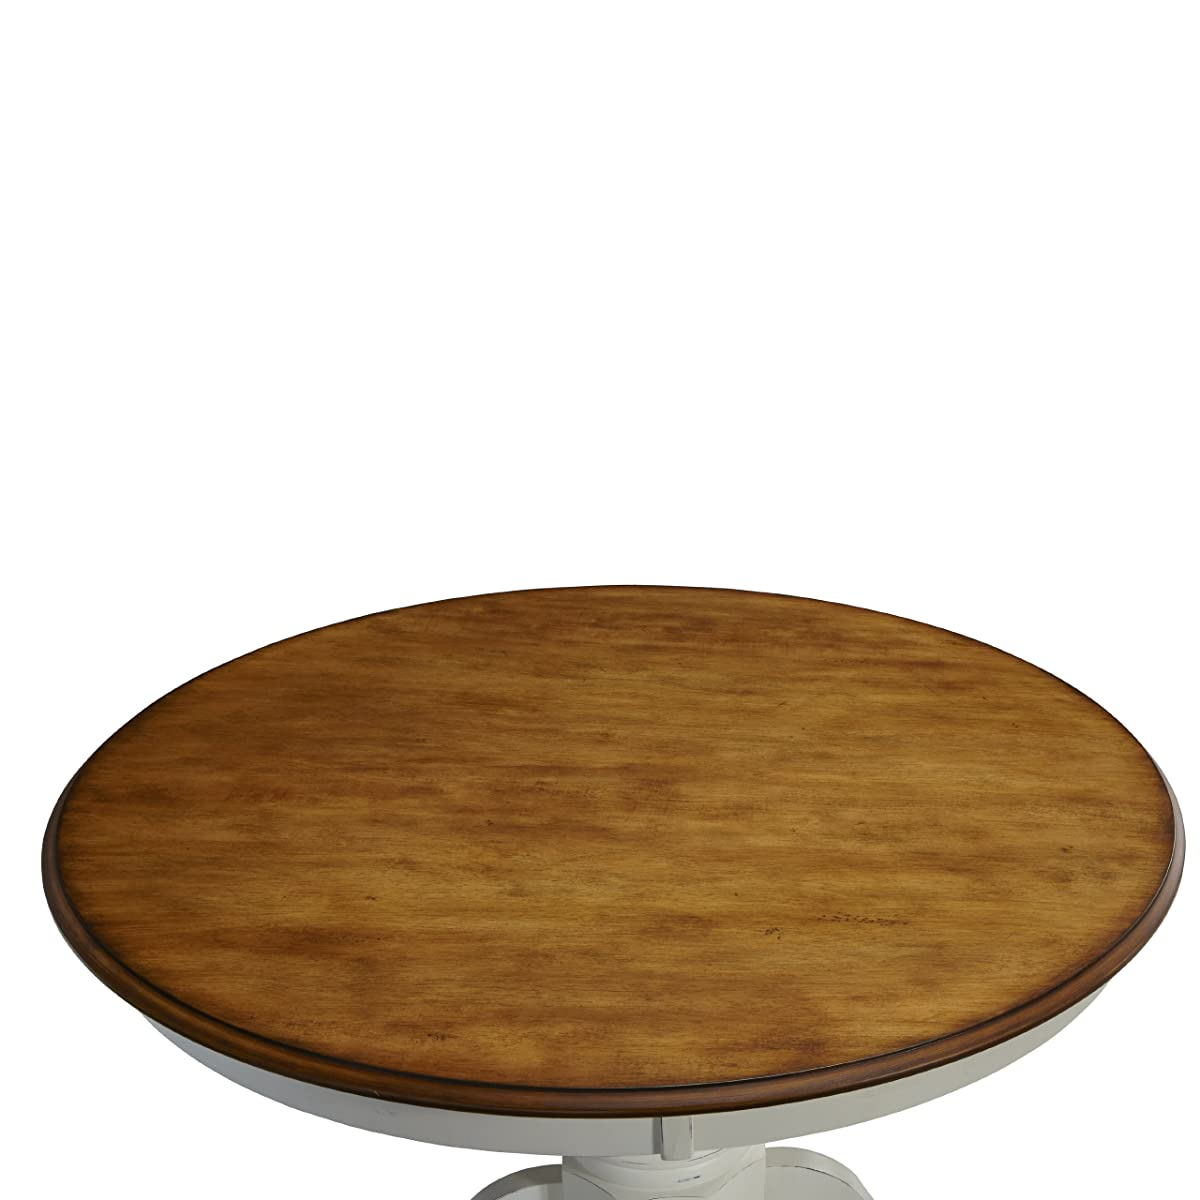 Home Styles 5518-30 The French Countryside Pedestal Table, Oak and Rubbed White